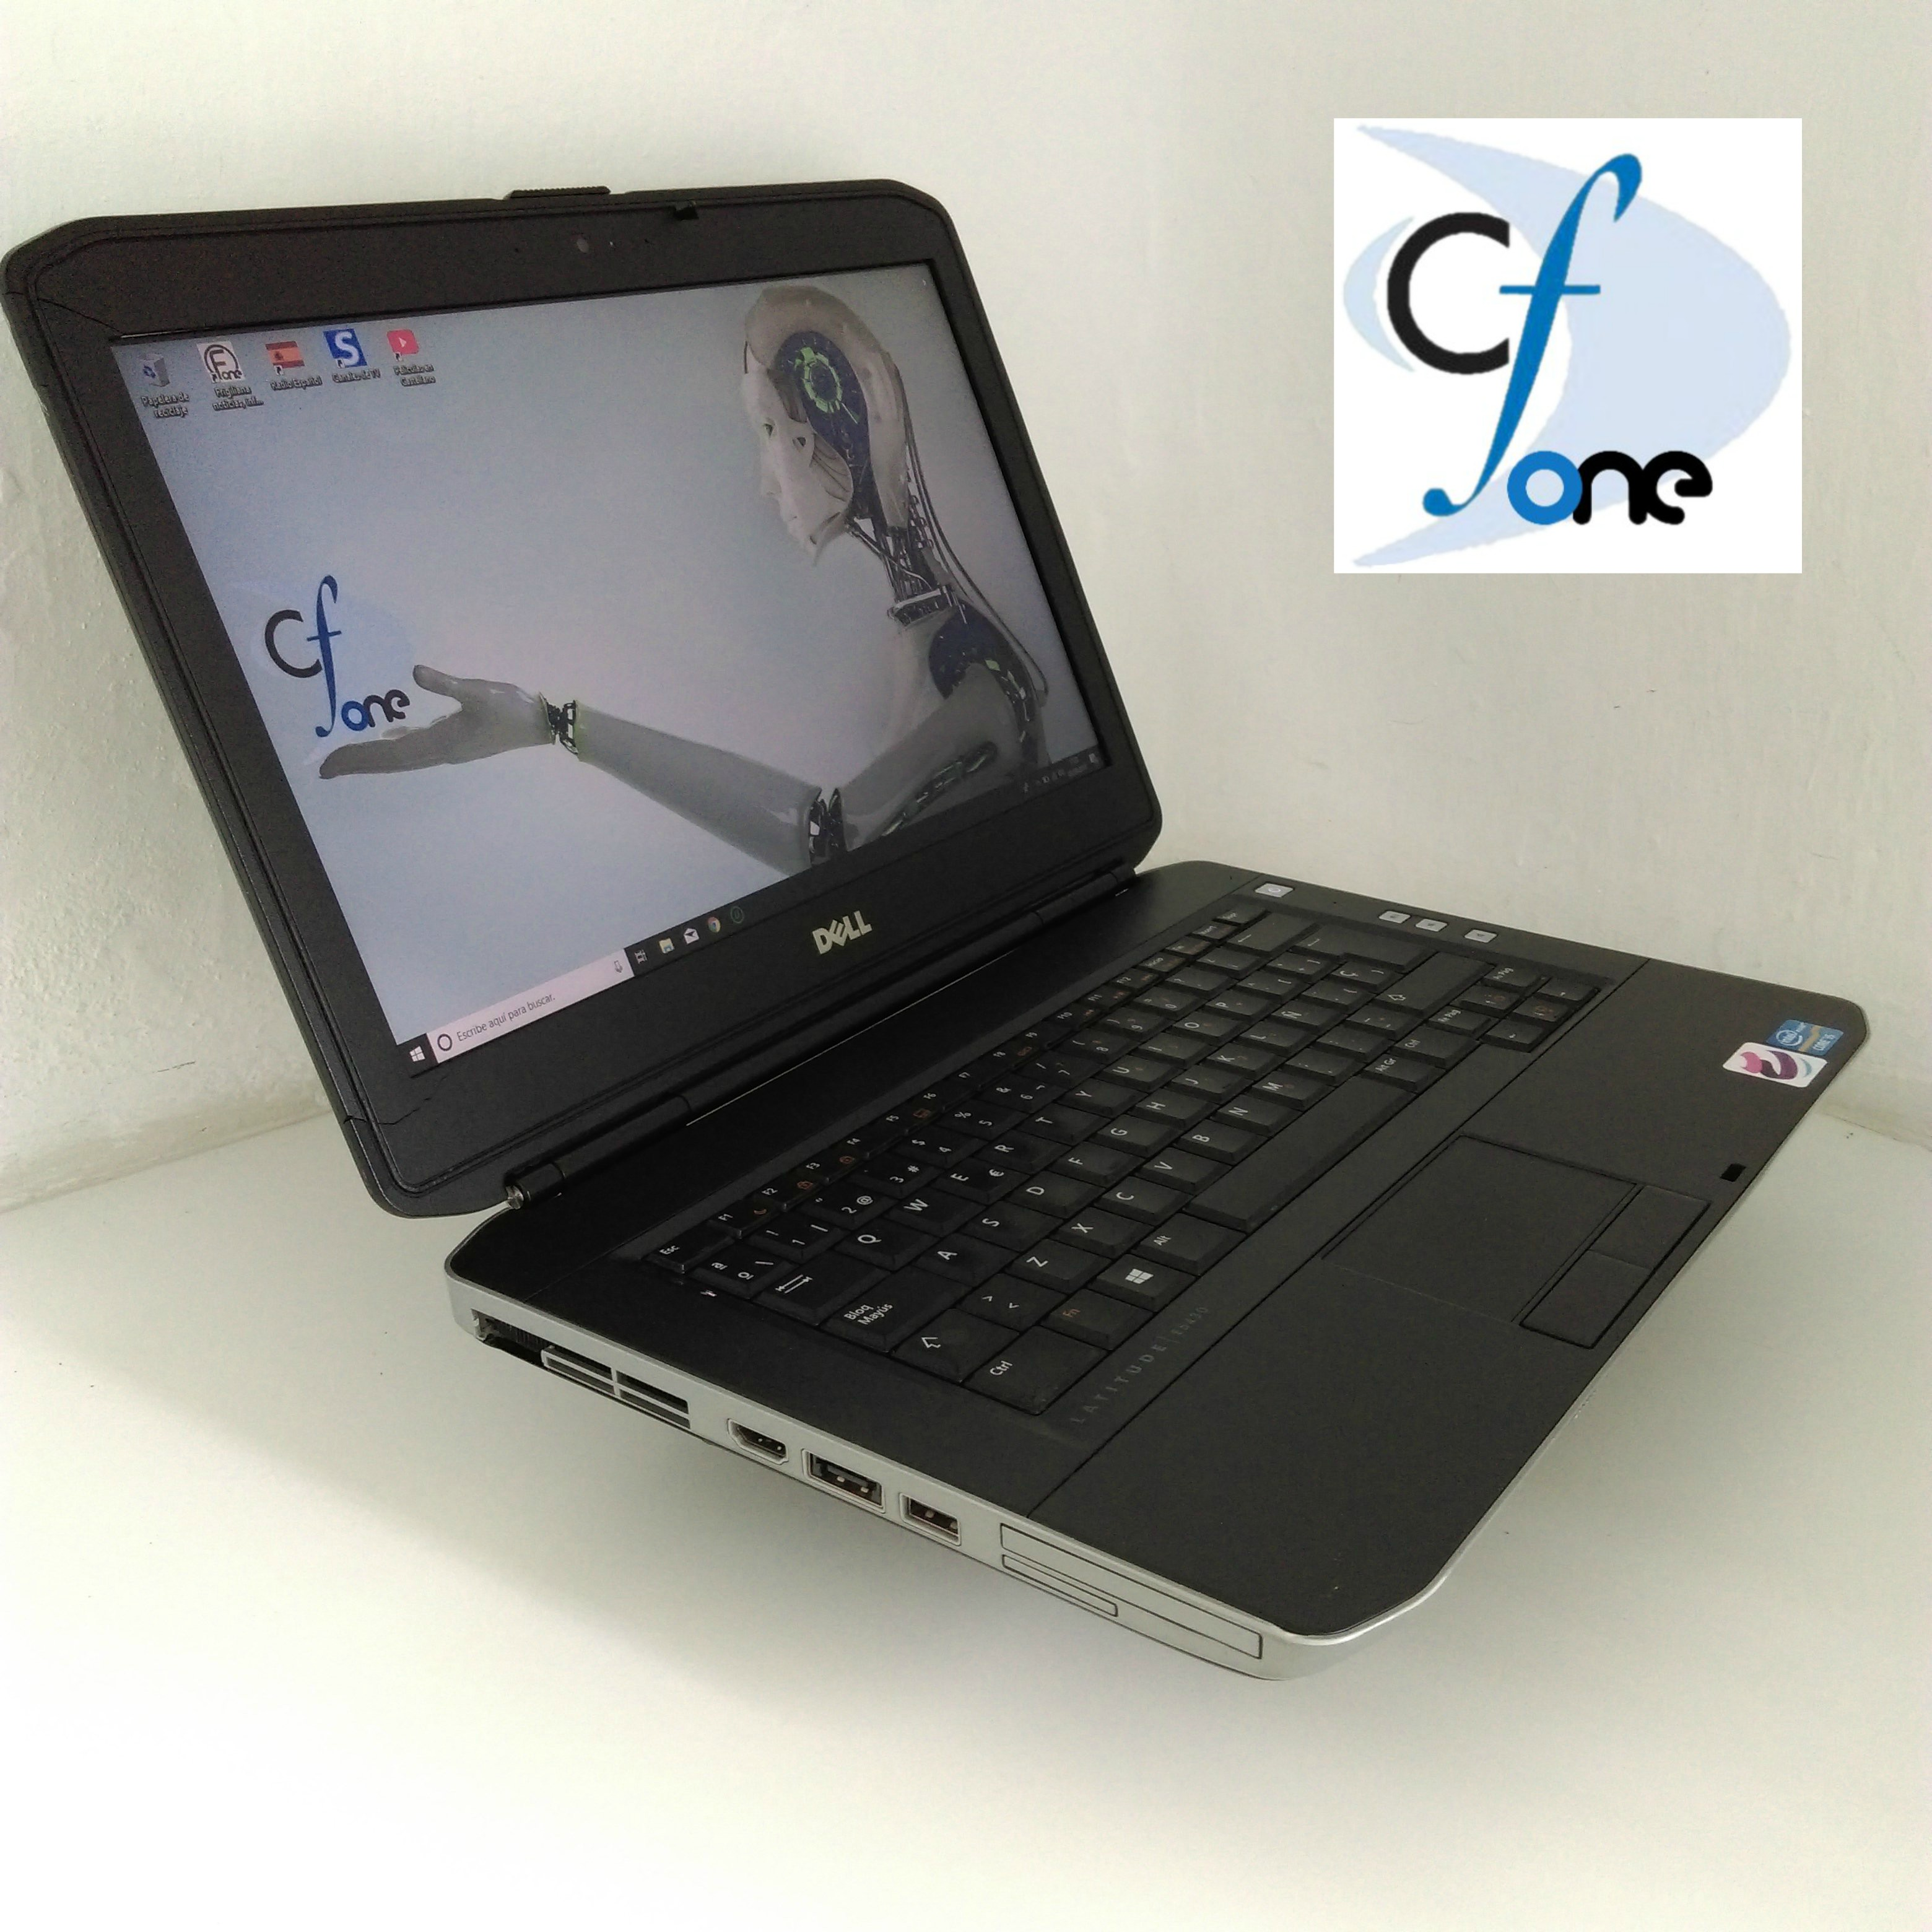 Dell Latitude E5430 Refurbished Used Laptop Computer